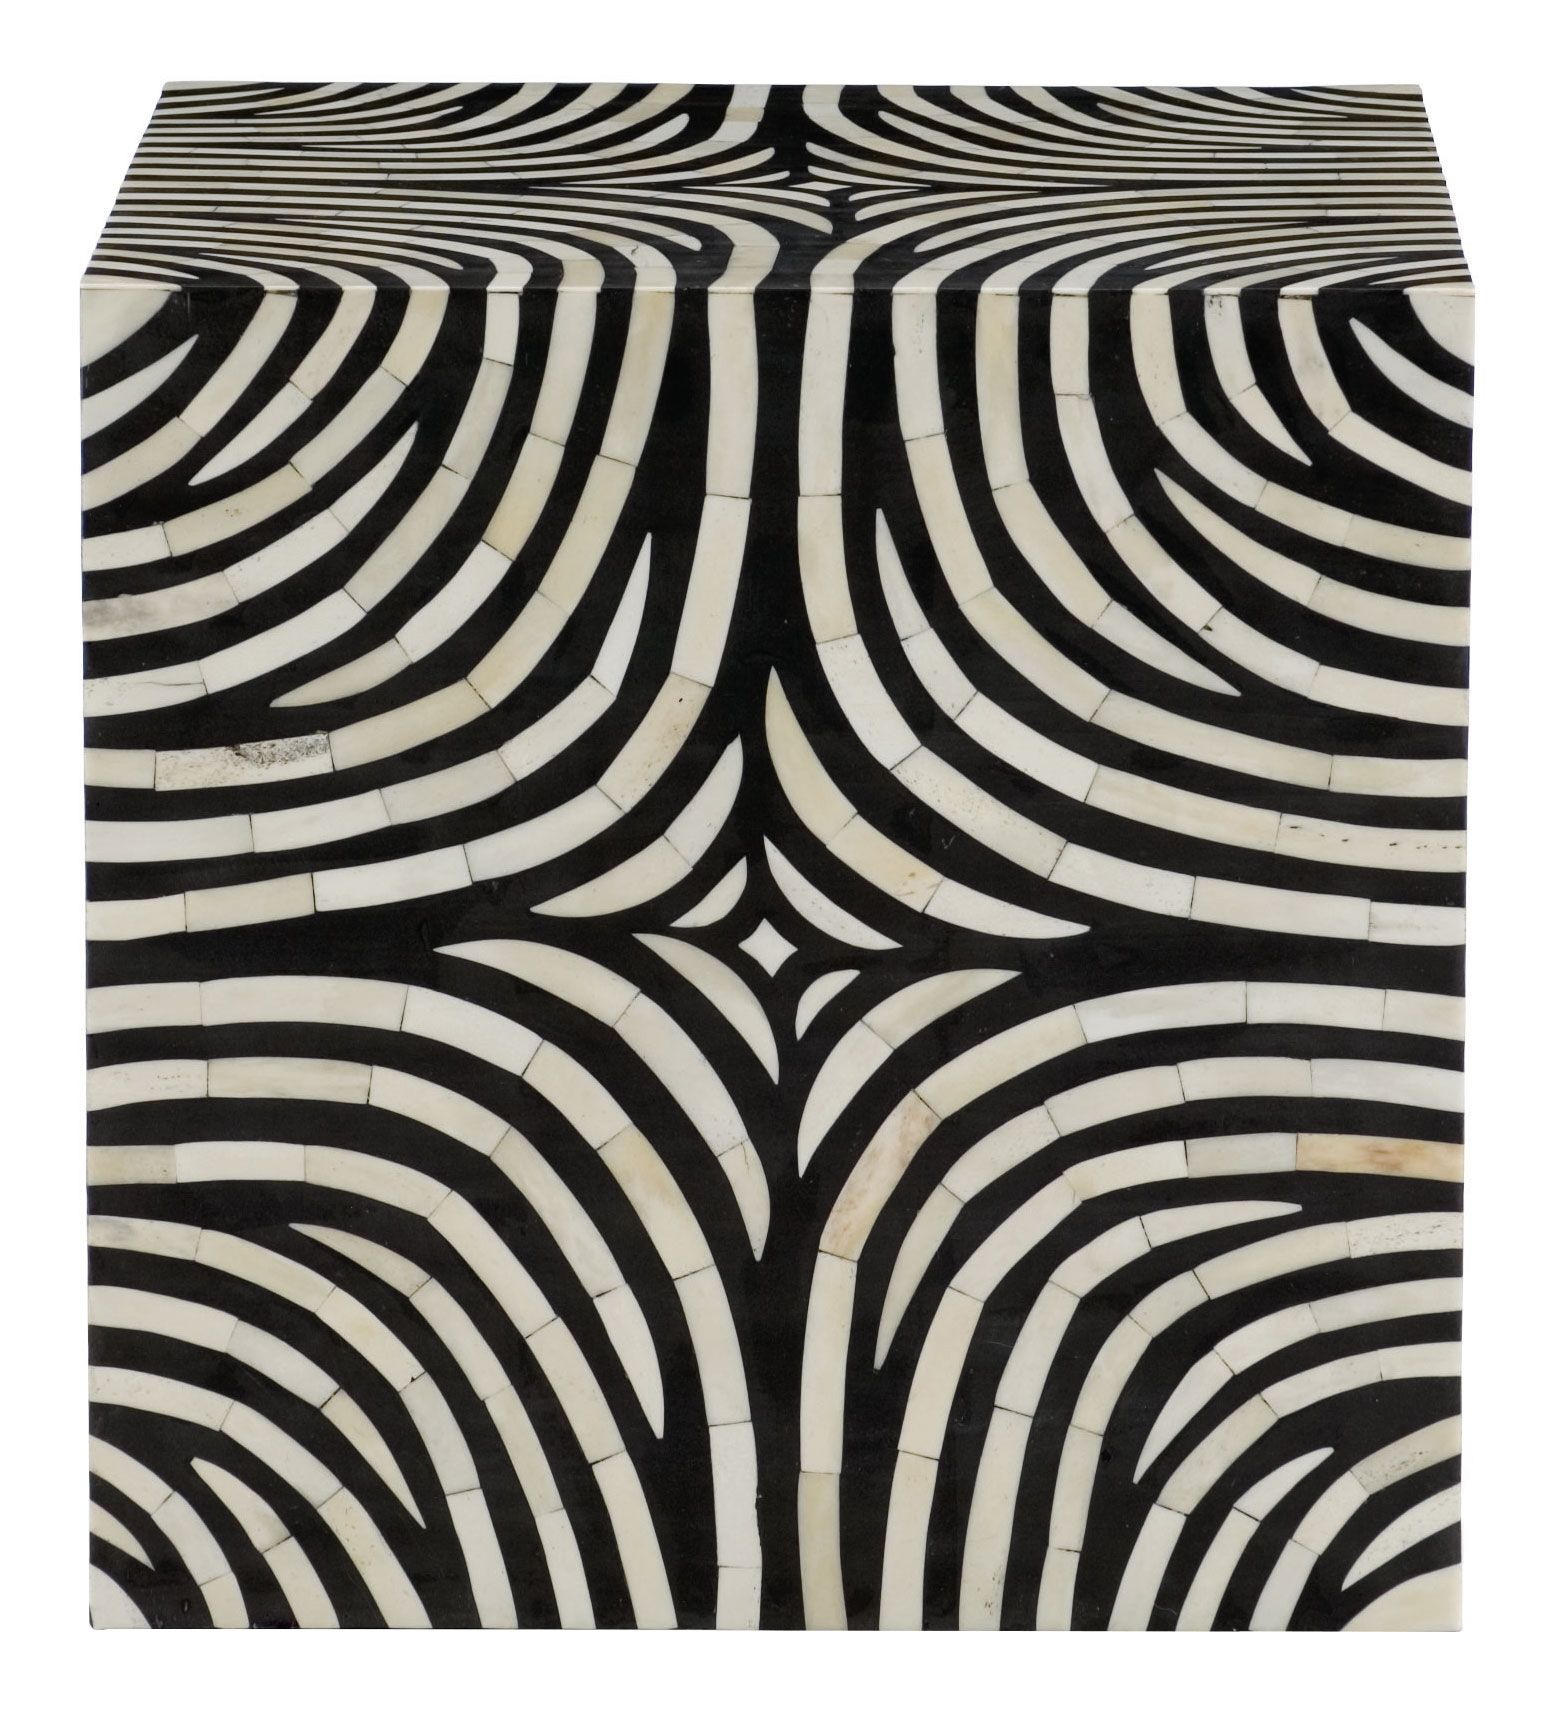 cube bernhardt klass table end tables zebra accent wooden side wood sofa covers kmart storage coffee outdoor buffet server waterproof phone pouch target patio furniture clearance